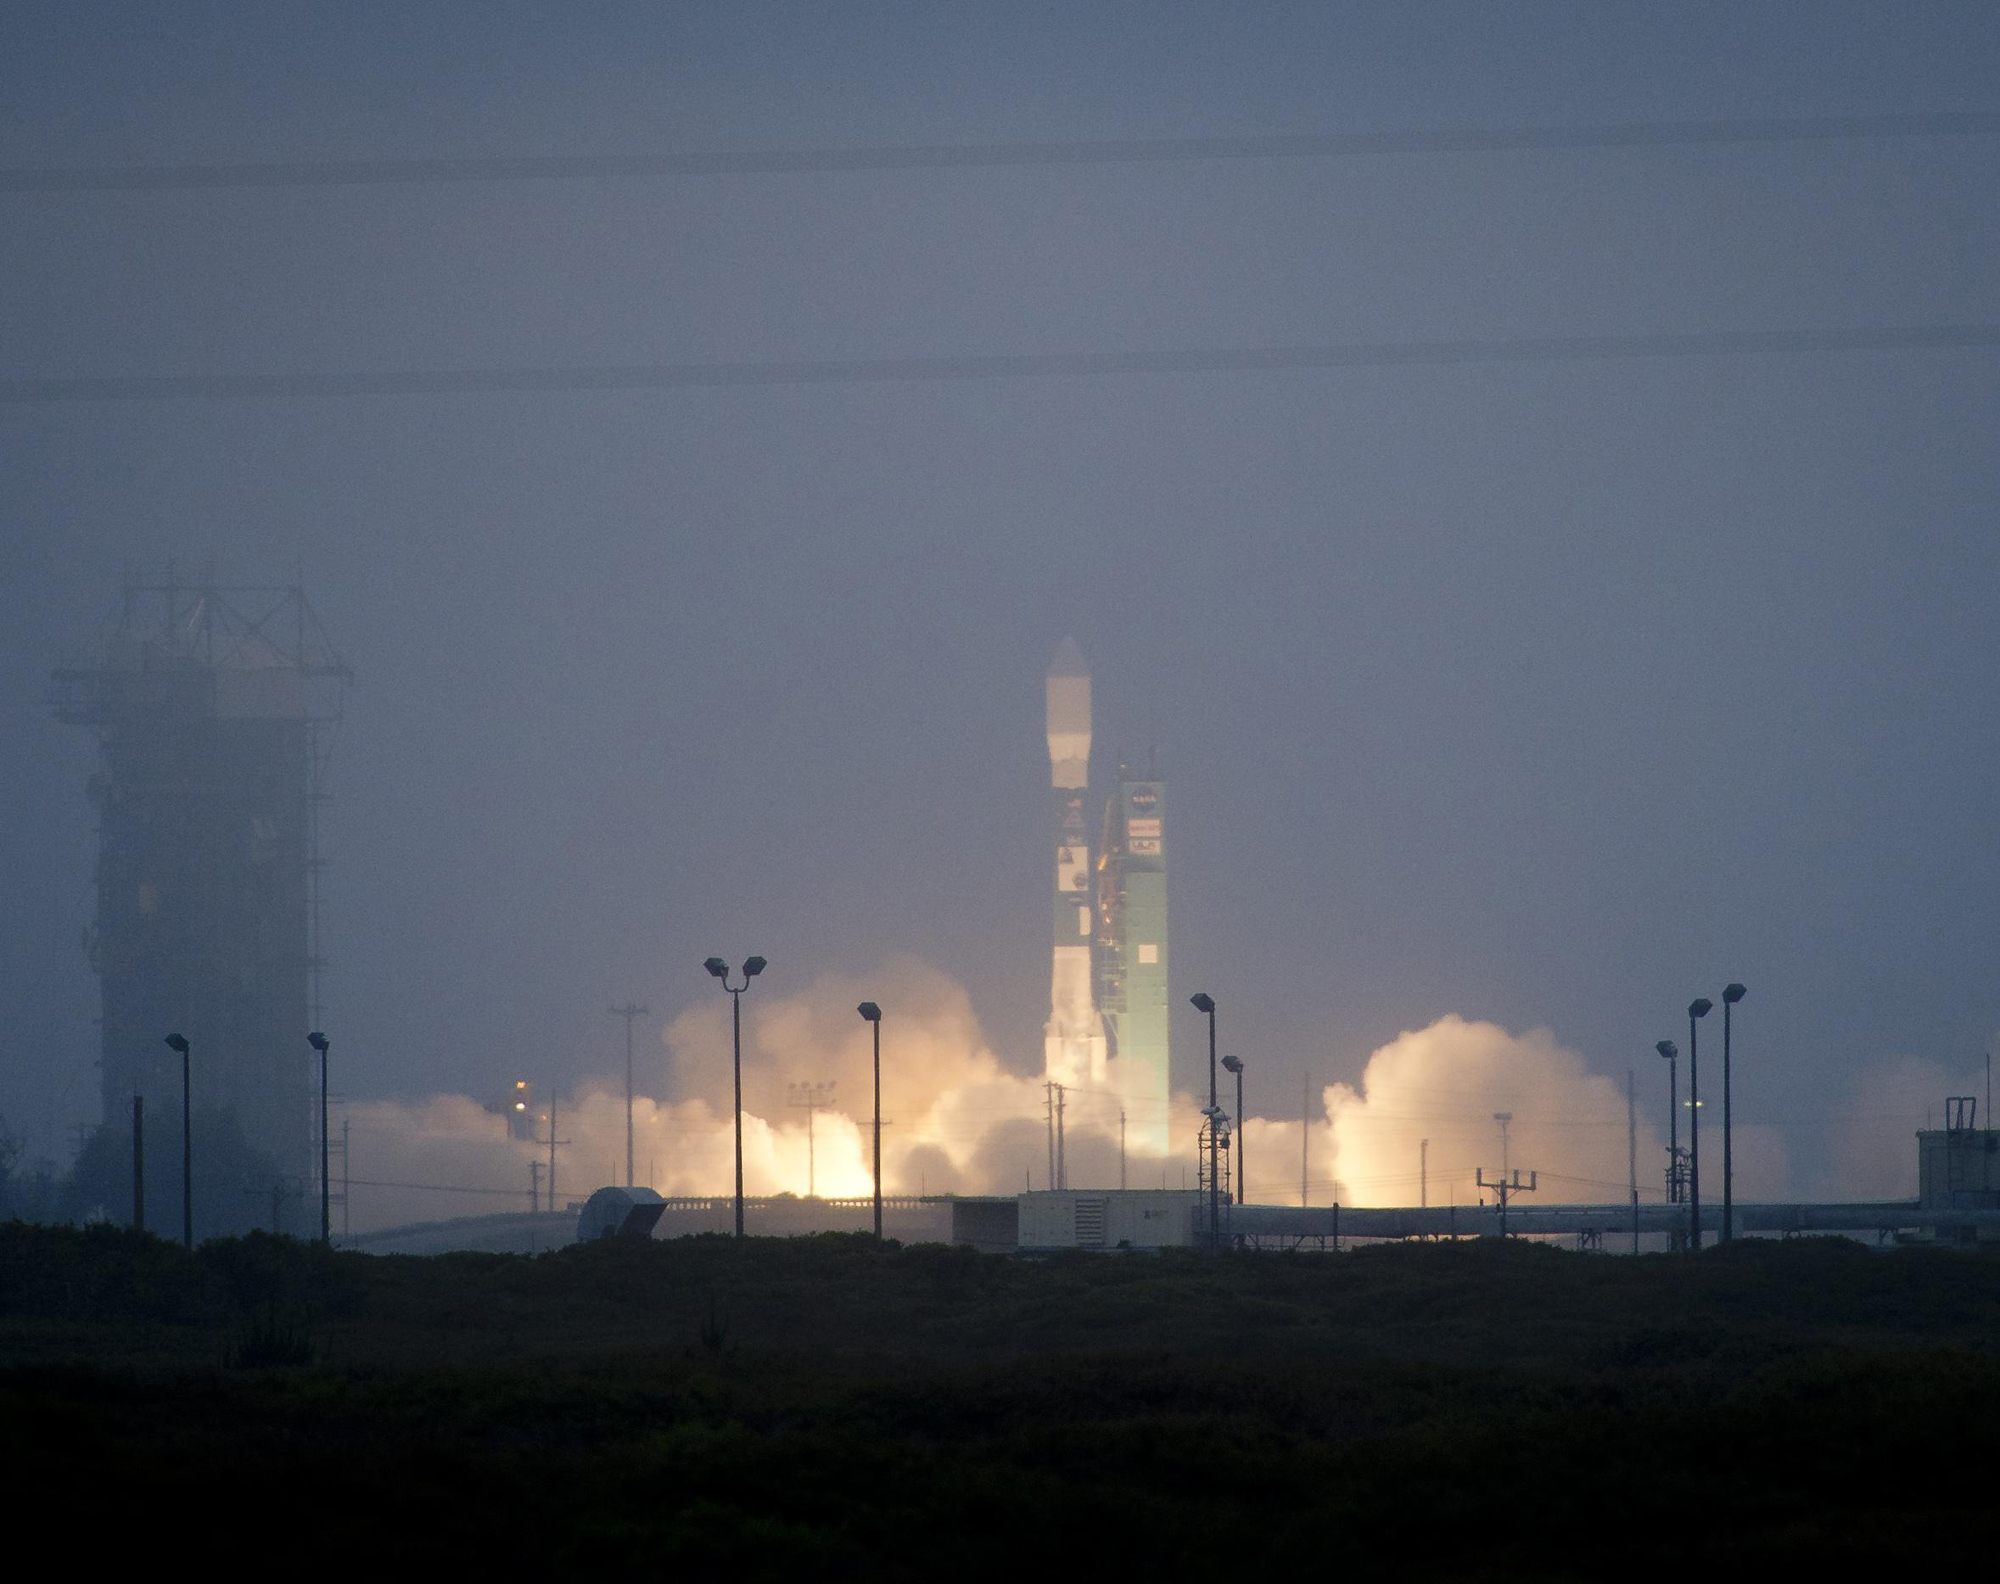 A Delta 2 rocket launches with the Aquarius/SAC-D spacecraft payload from Space Launch Complex 2 at Vandenberg Air Force Base, Calif. on June 10, 2011. The joint U.S./Argentinian Aquarius/SAC-D mission will map the salinity at the ocean surface to improve